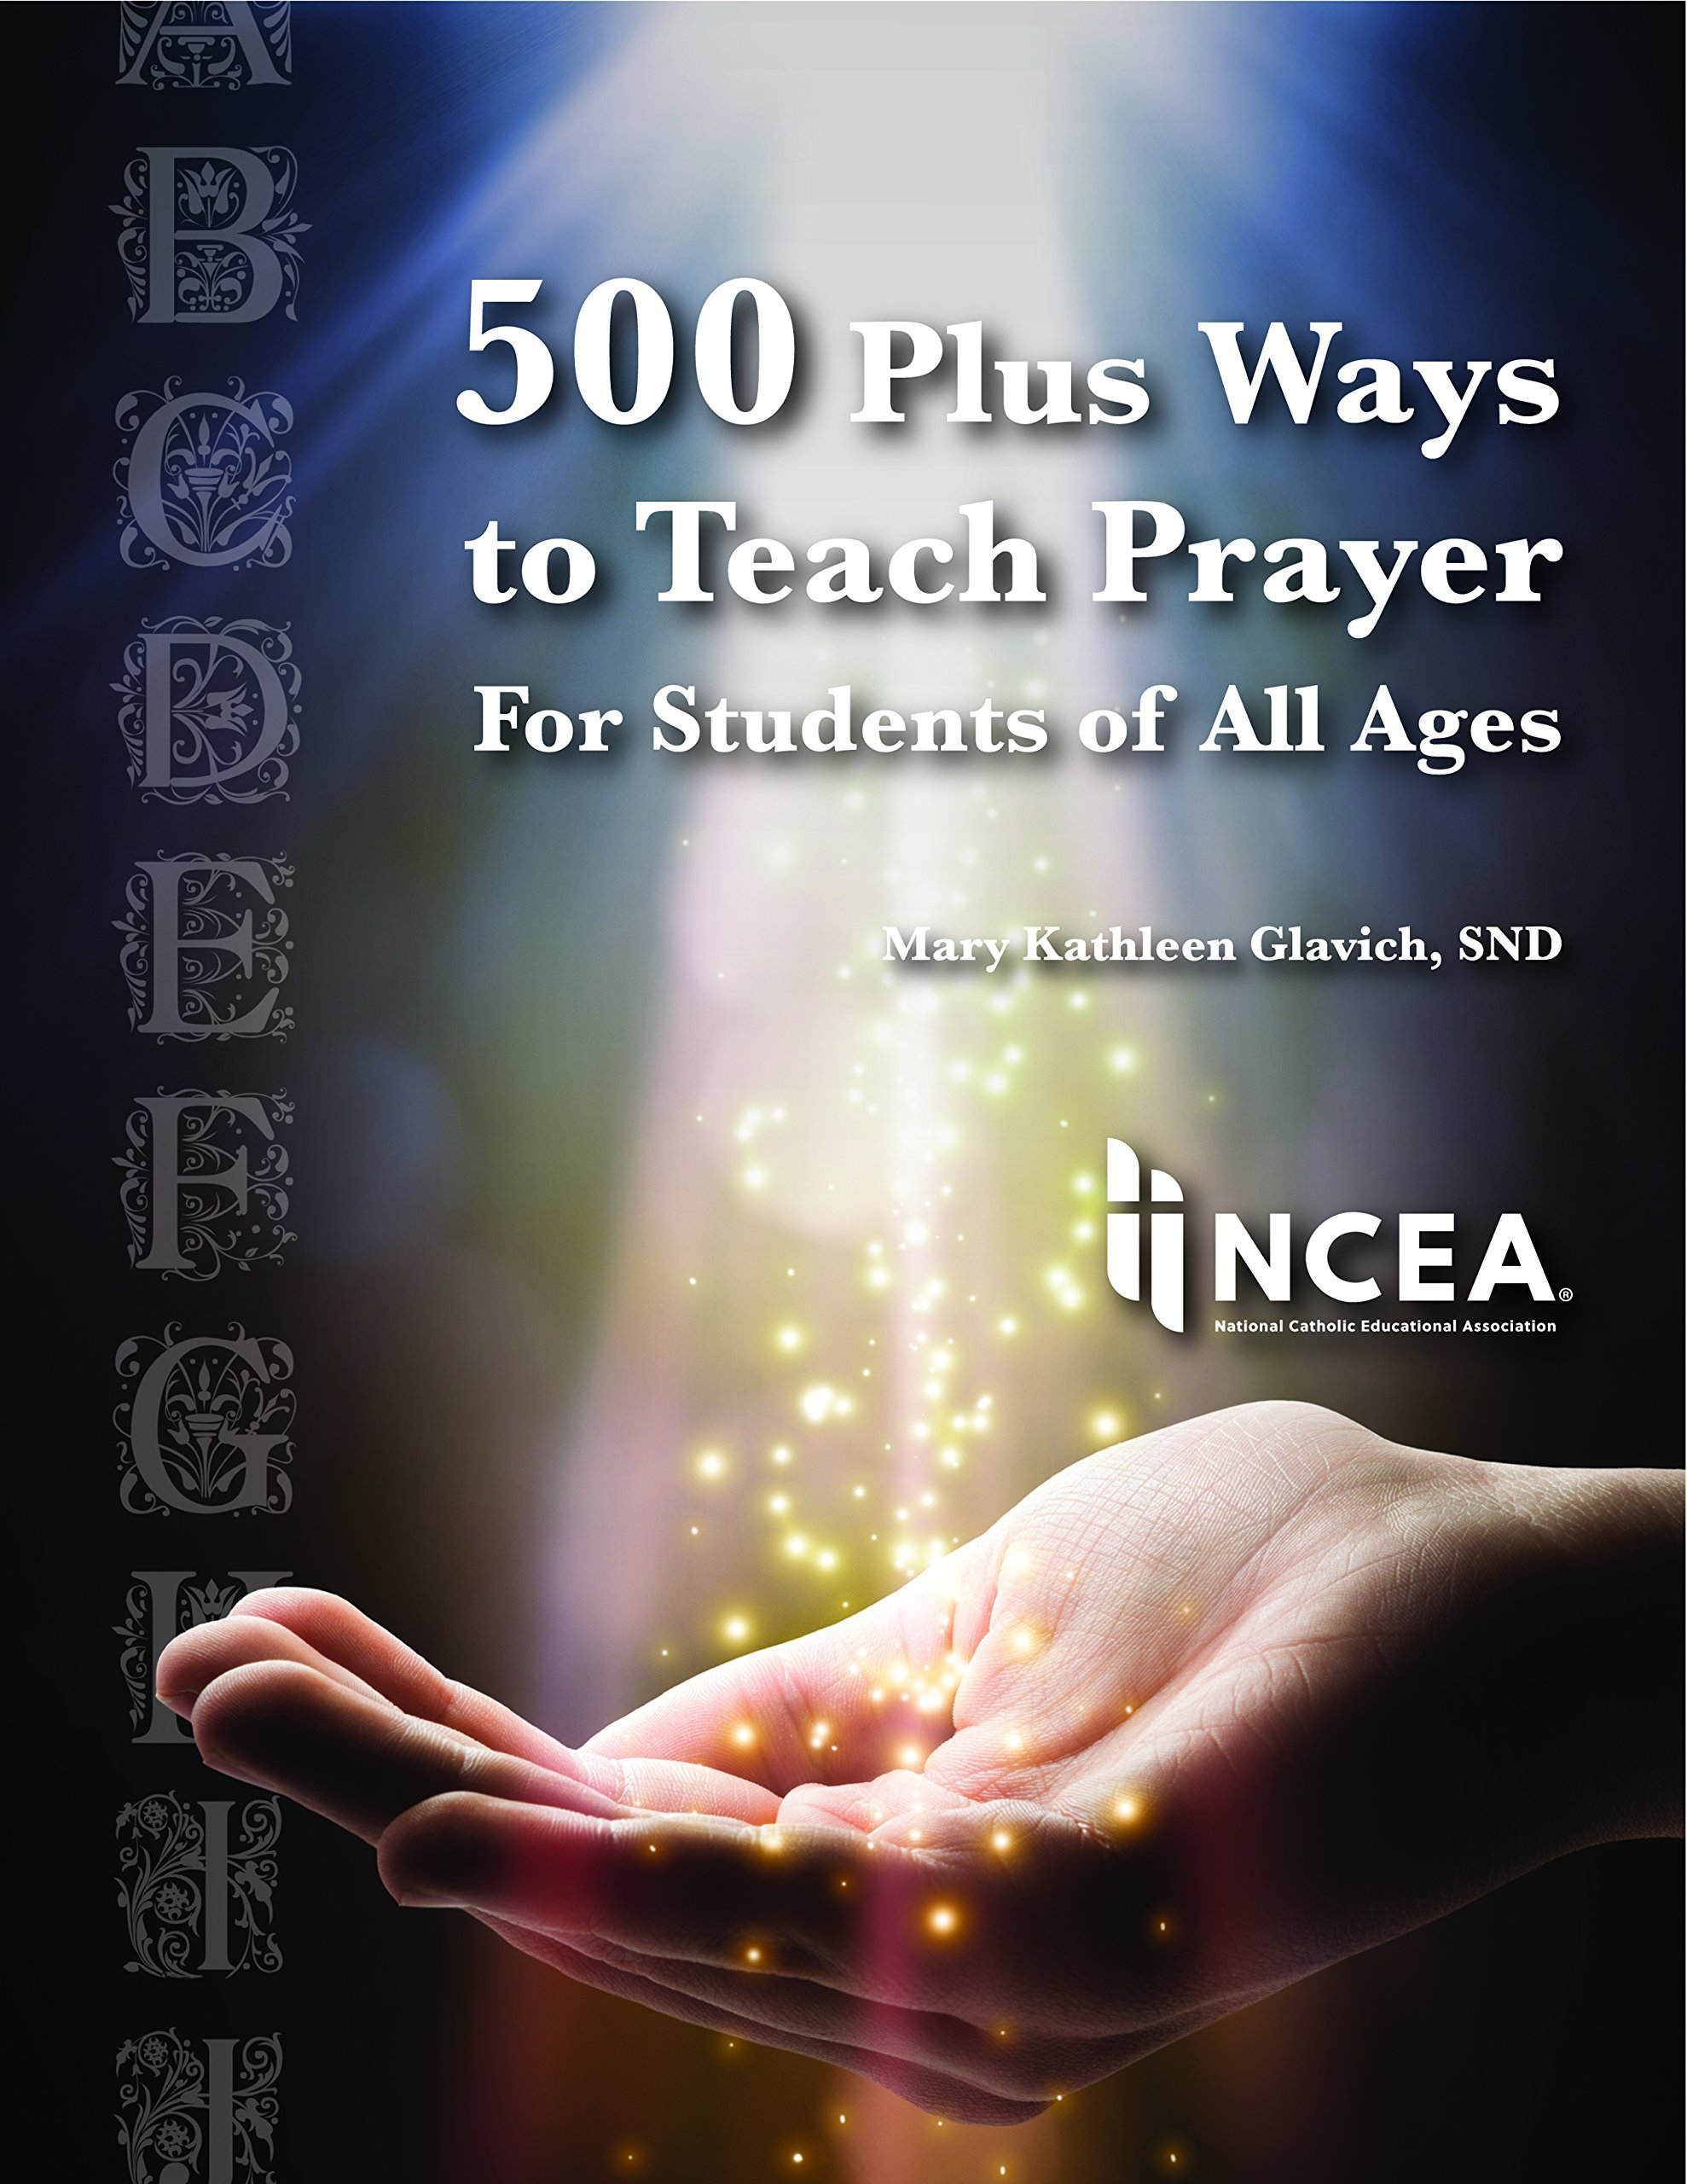 500 Plus Ways to Teach Prayer For Students of All Ages